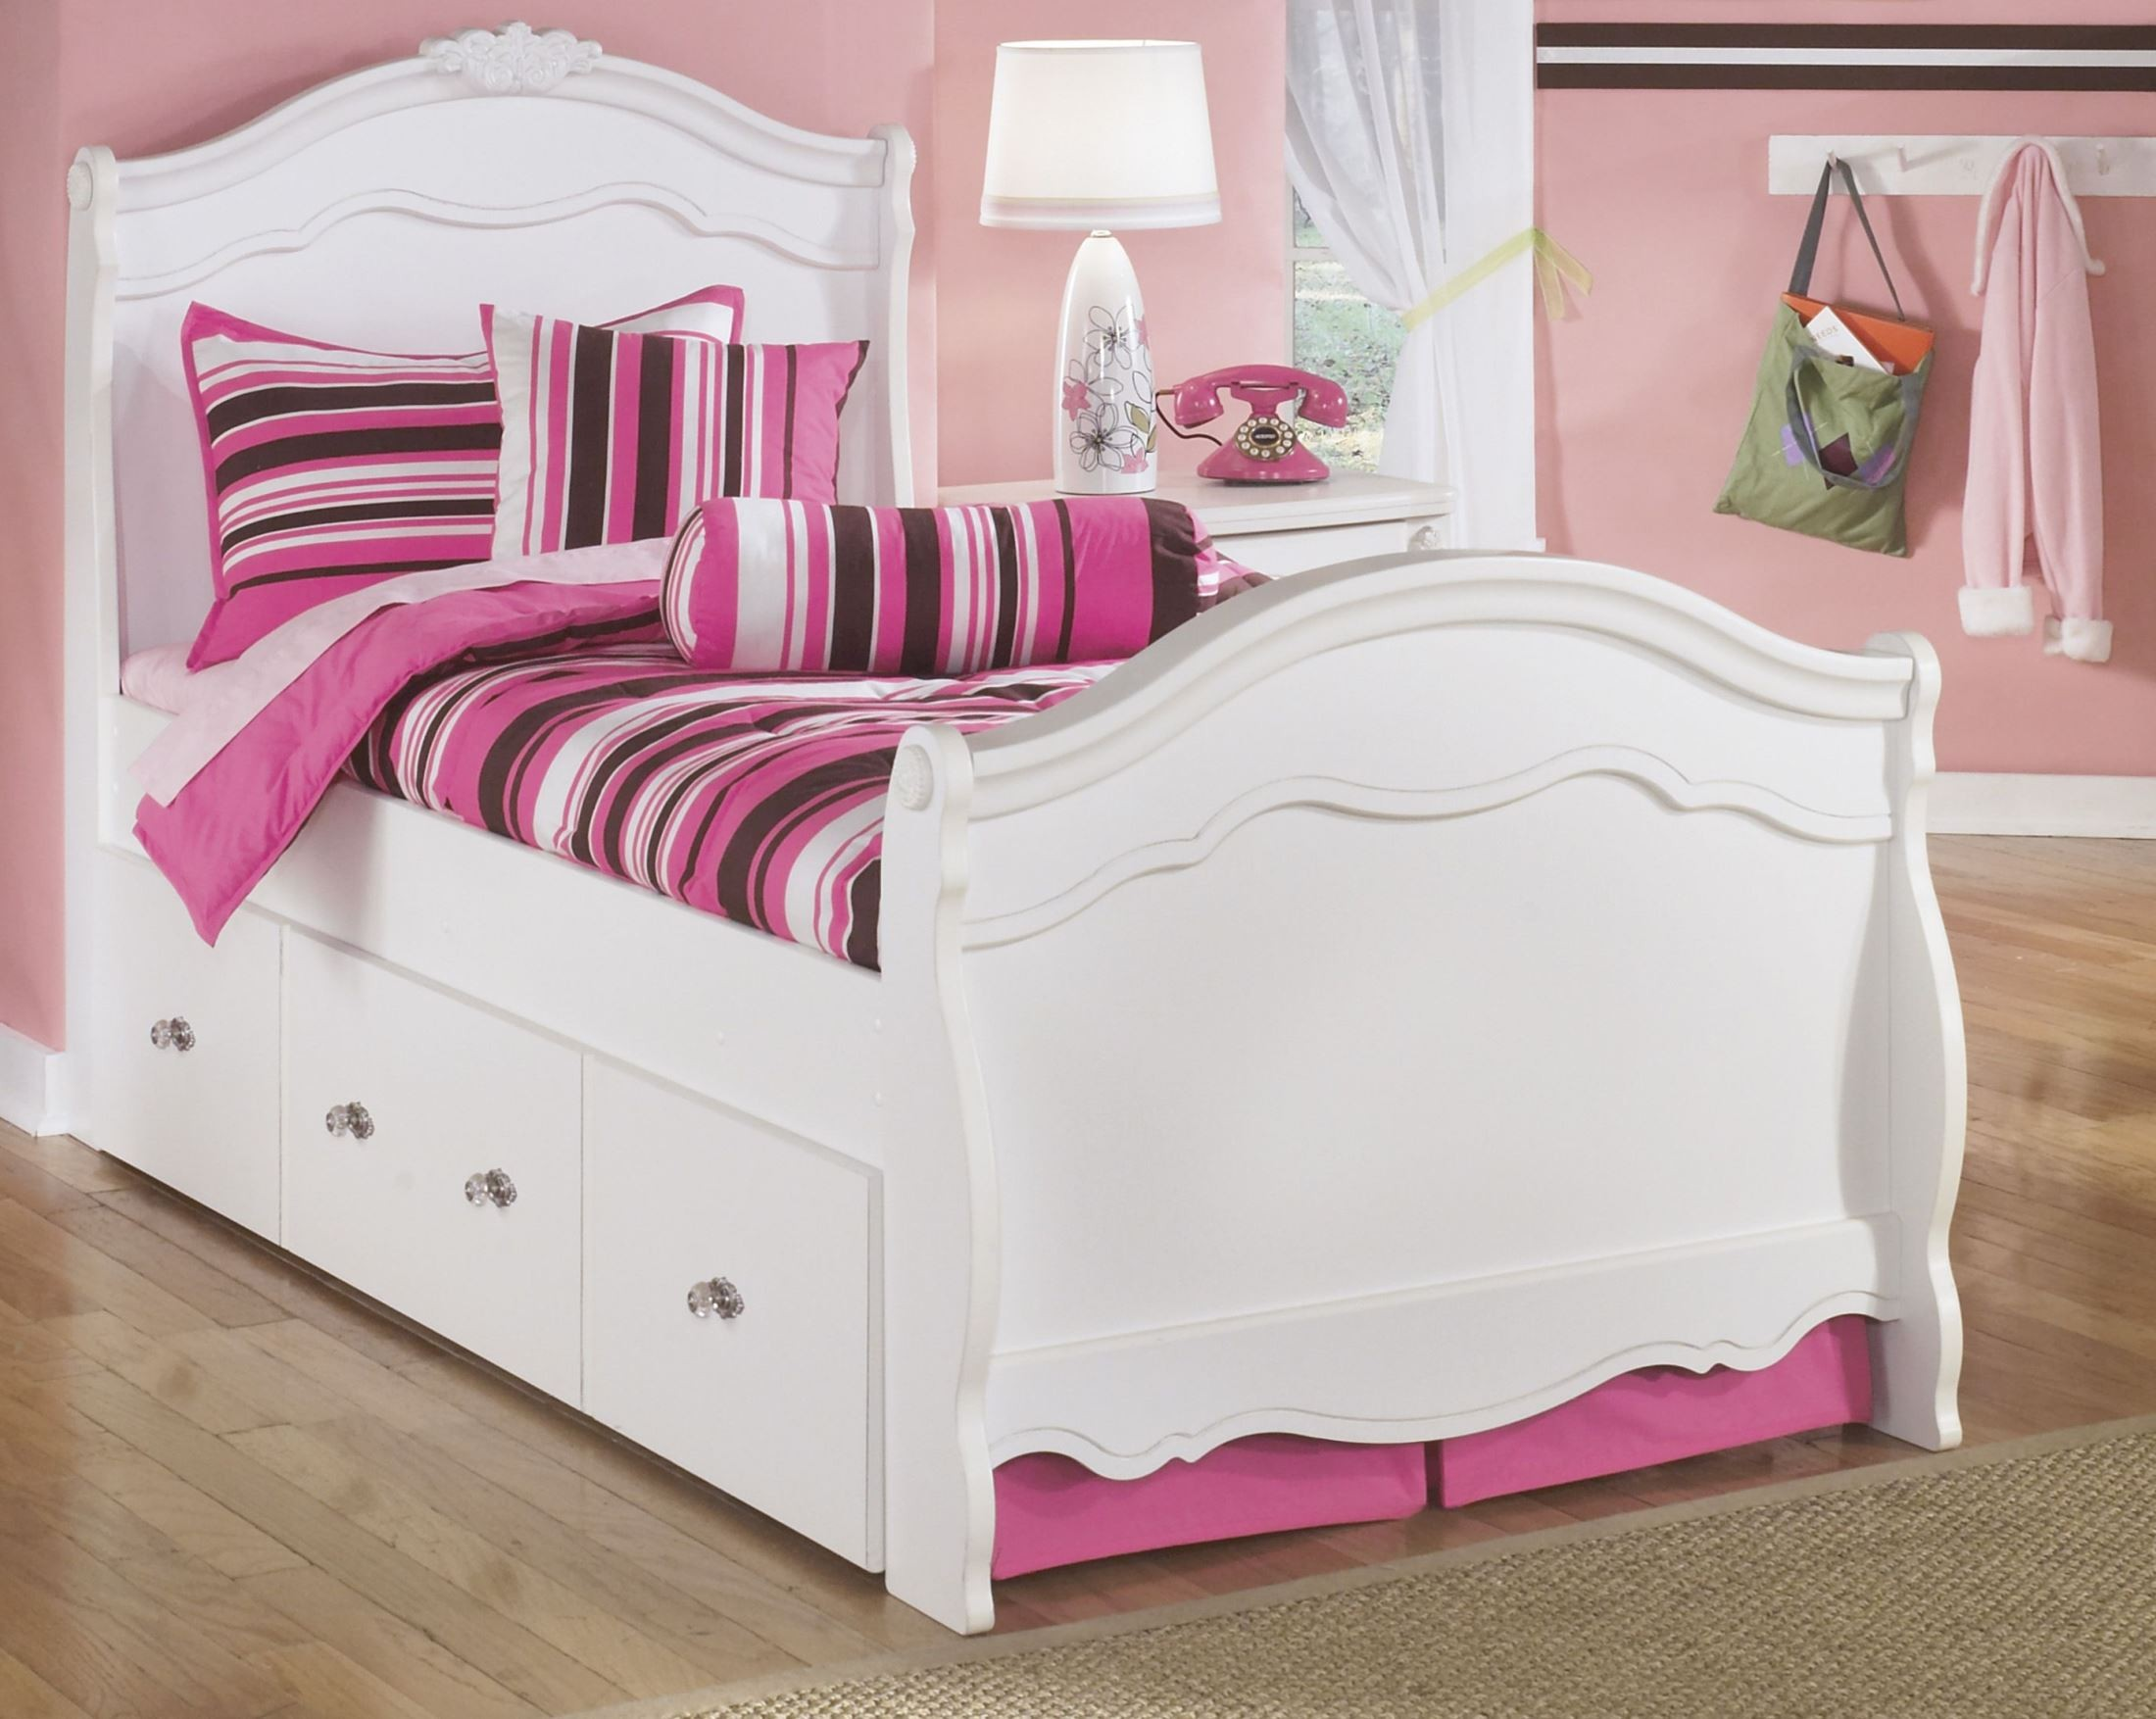 exquisite youth sleigh bedroom set from ashley b188 62n 11523 | b188 t slgh 50 sd 2